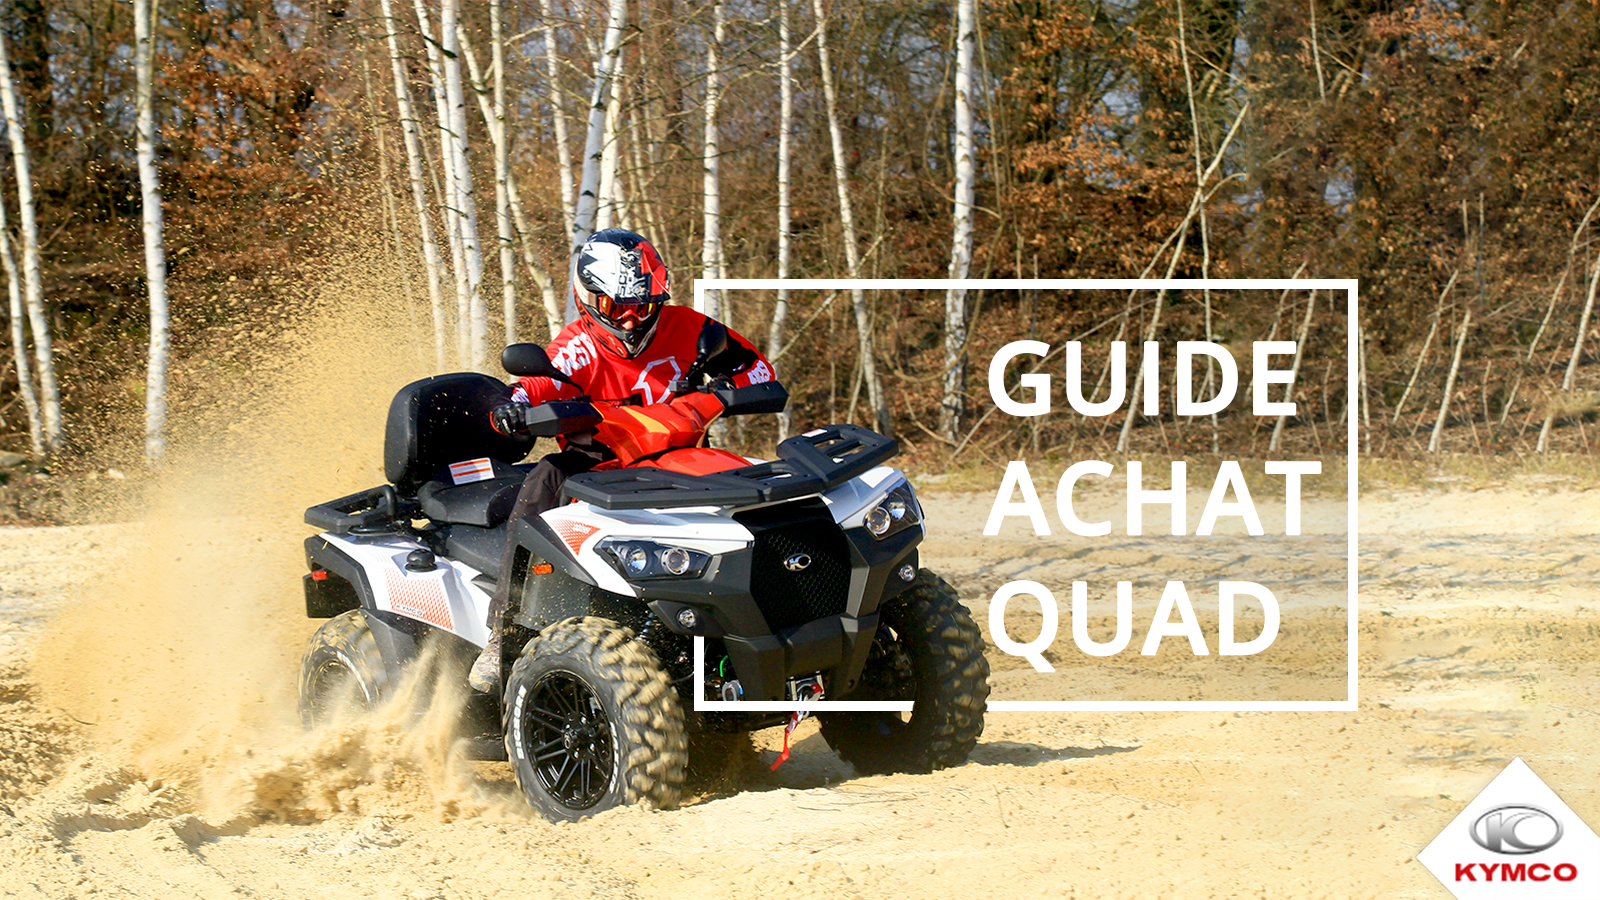 Guide_achat_quad-ssv-featured-1